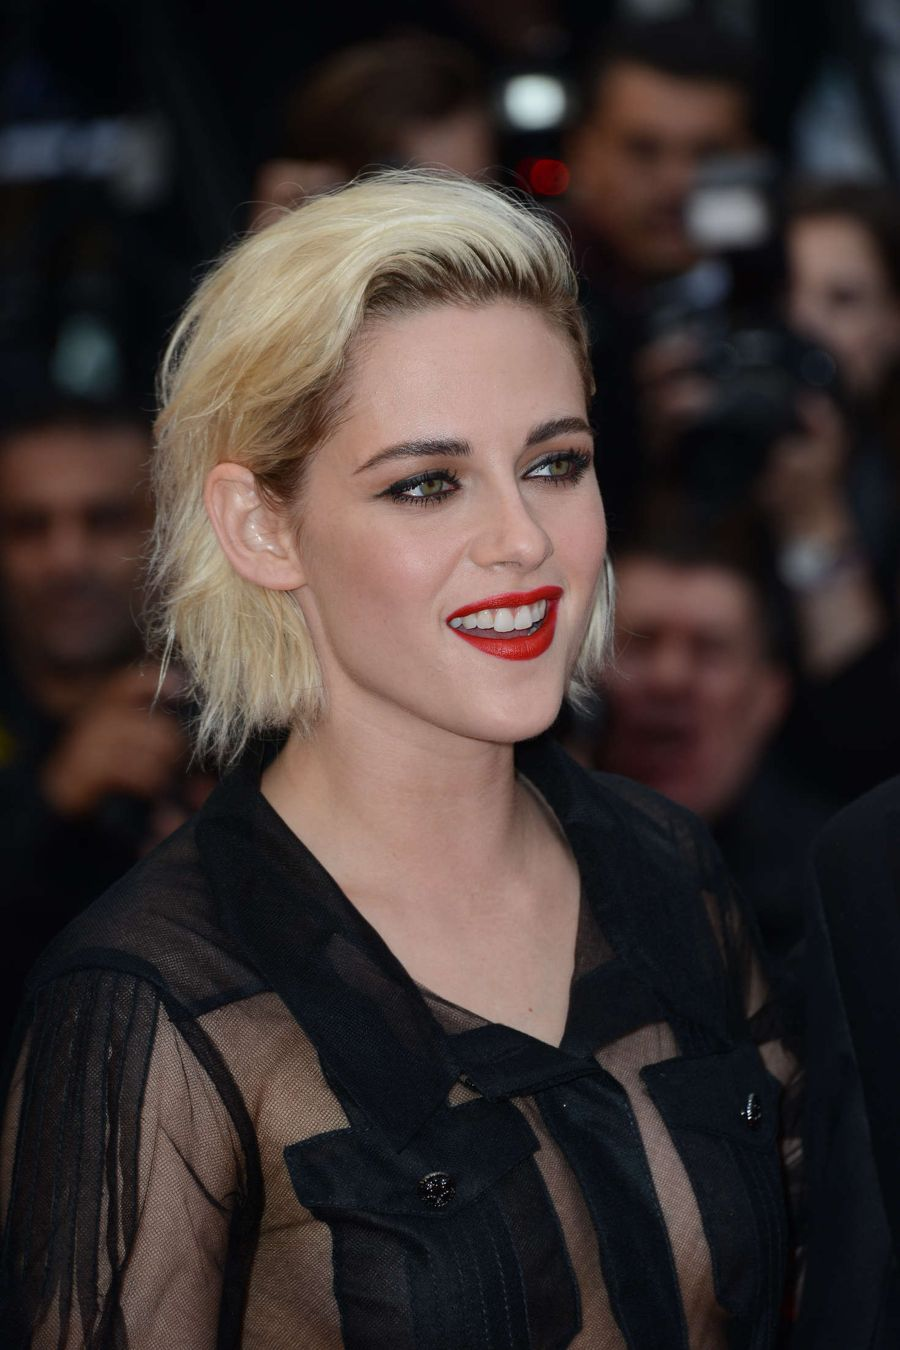 Kristen Stewart - 'Cafe Society' Premiere at Cannes